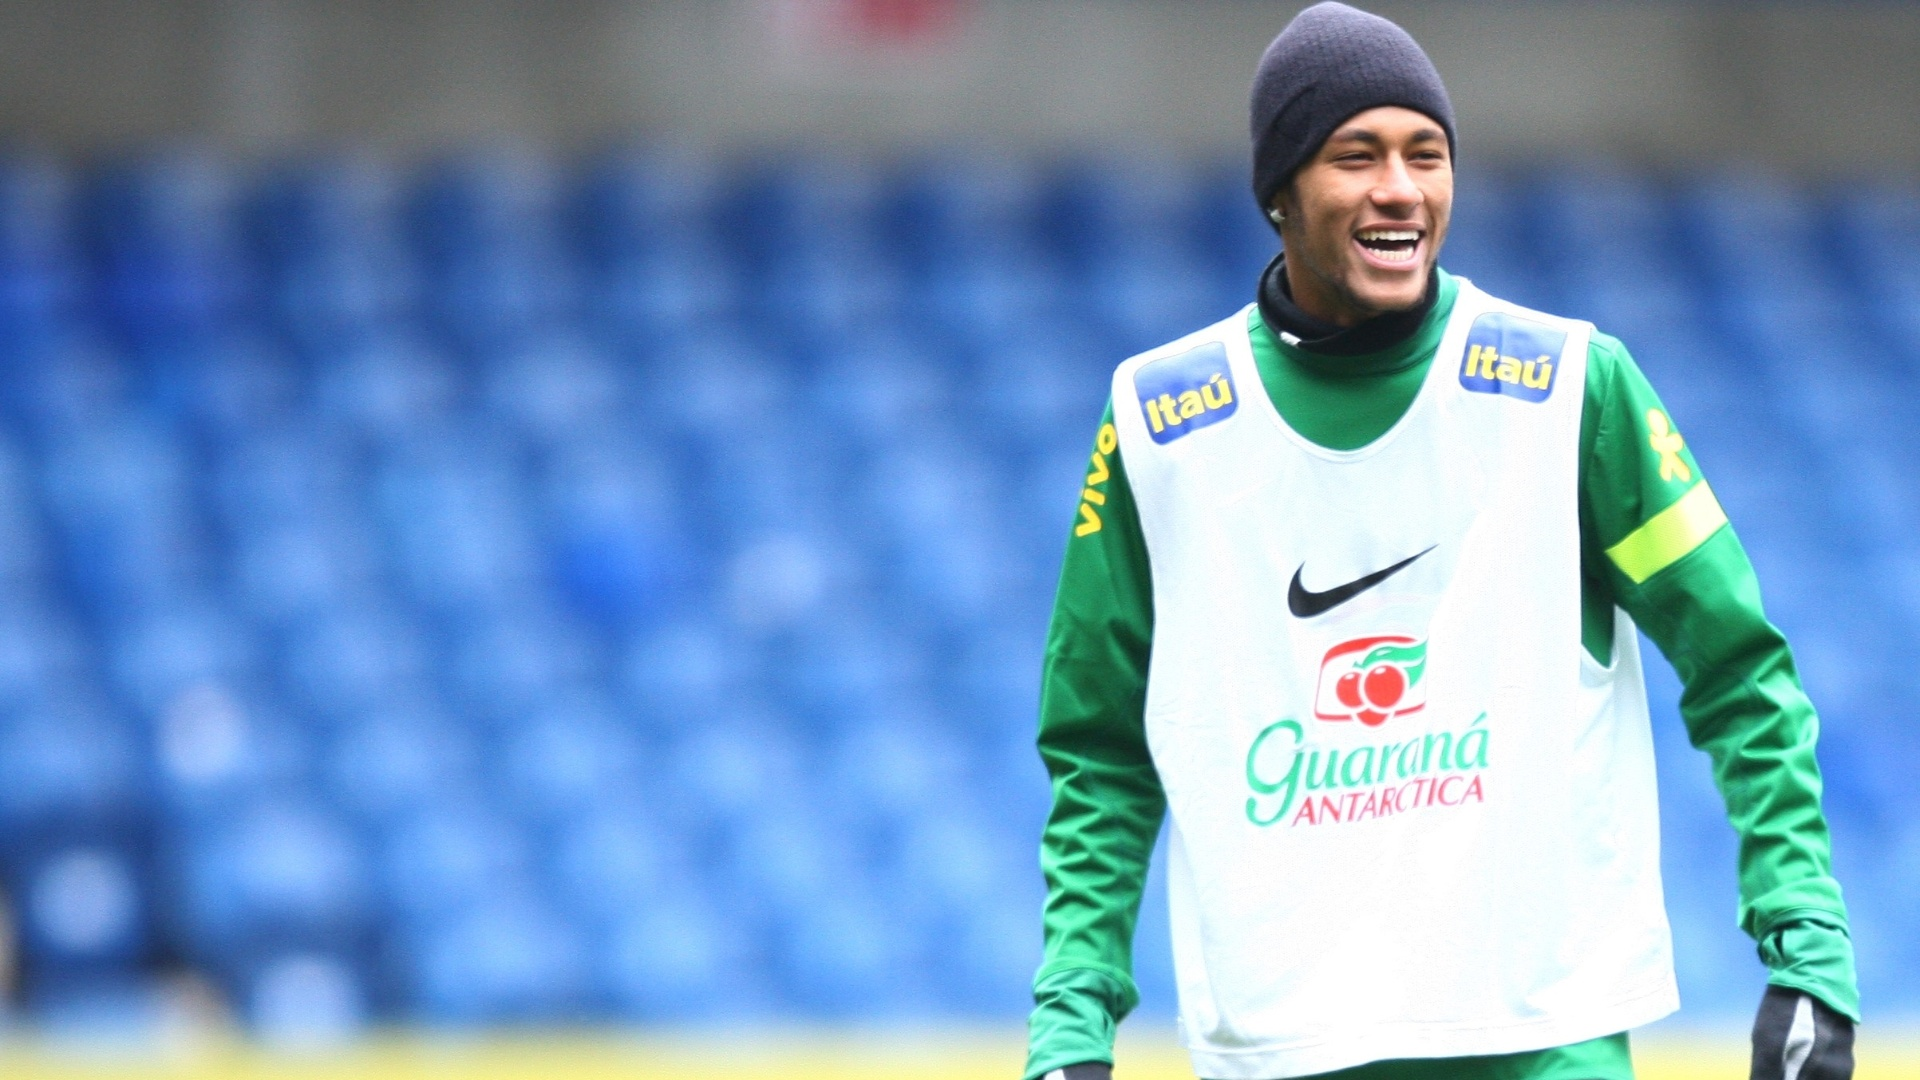 24.mar.2013 - Neymar participa do treino da seleo brasileira, em Londres, neste domingo, para o amistoso contra a Rssia, que acontecer na segunda-feira